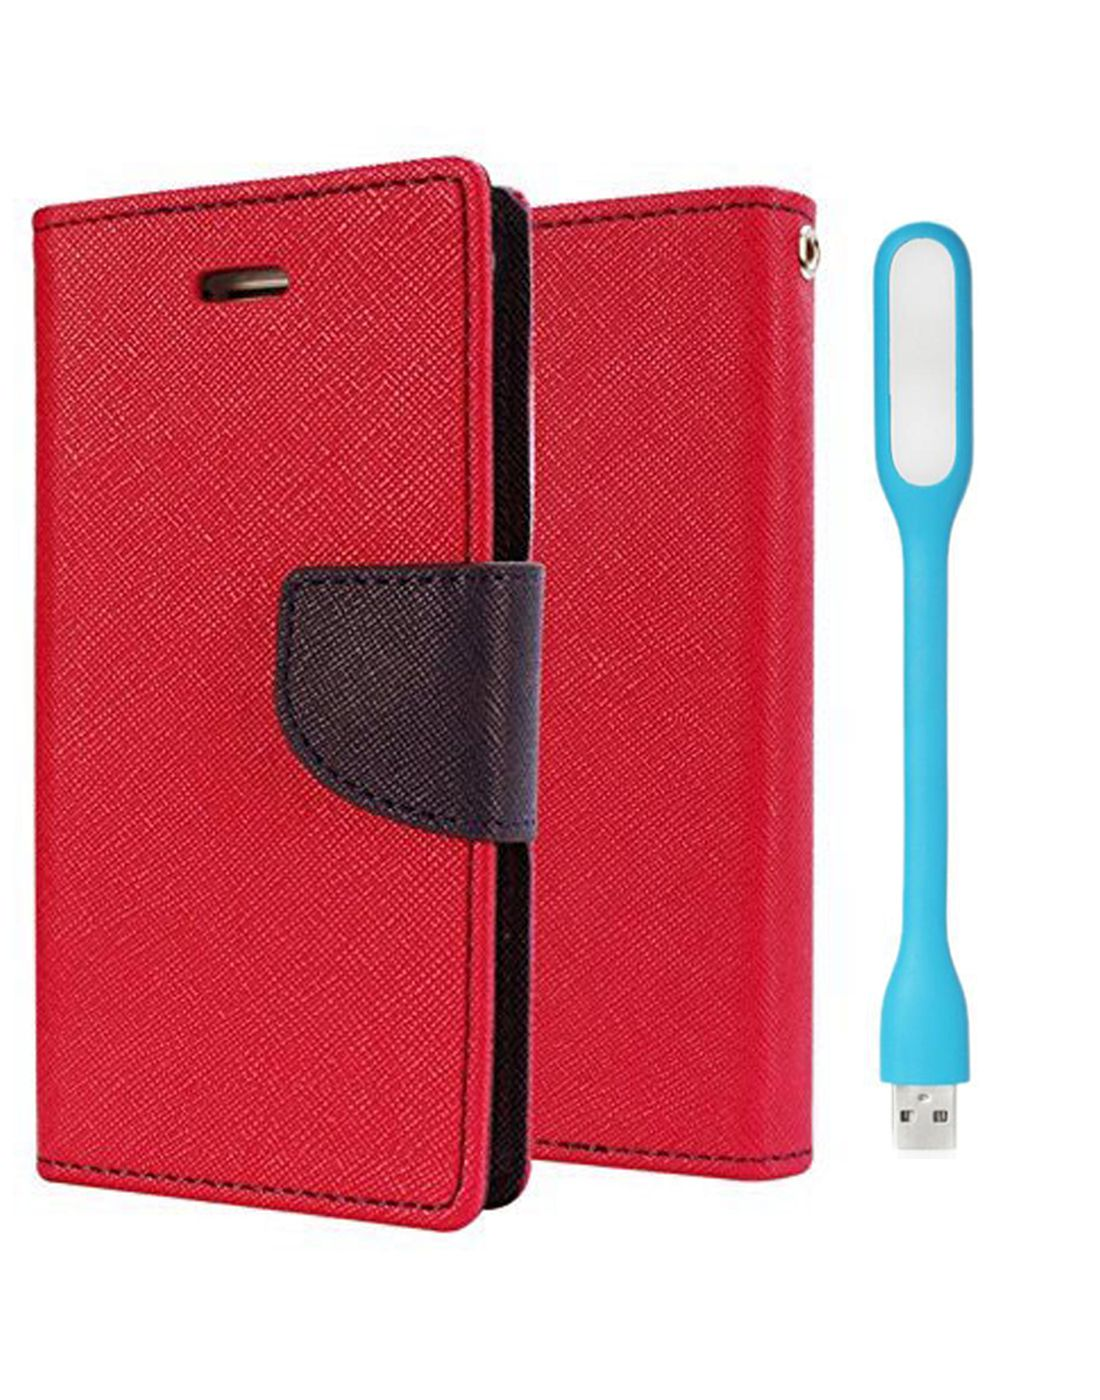 Wallet Flip Case Back Cover For Micromax Q345 - (Red) + Flexible Mini LED Stick Lamp Light By Style Crome